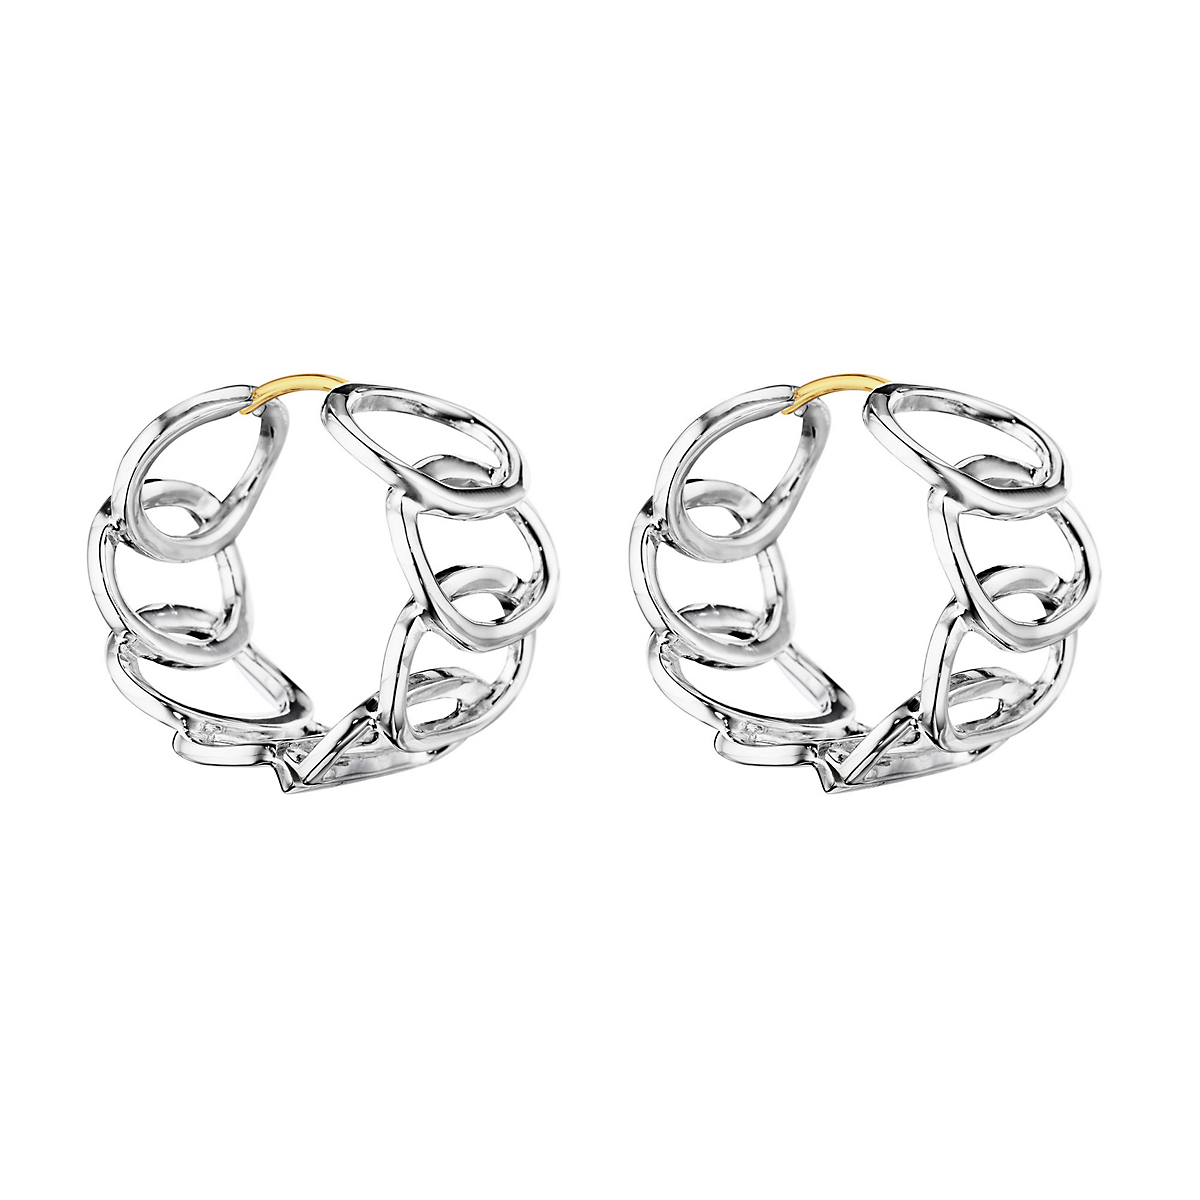 Sterling Silver Interlocking Oval Hoop Earrings